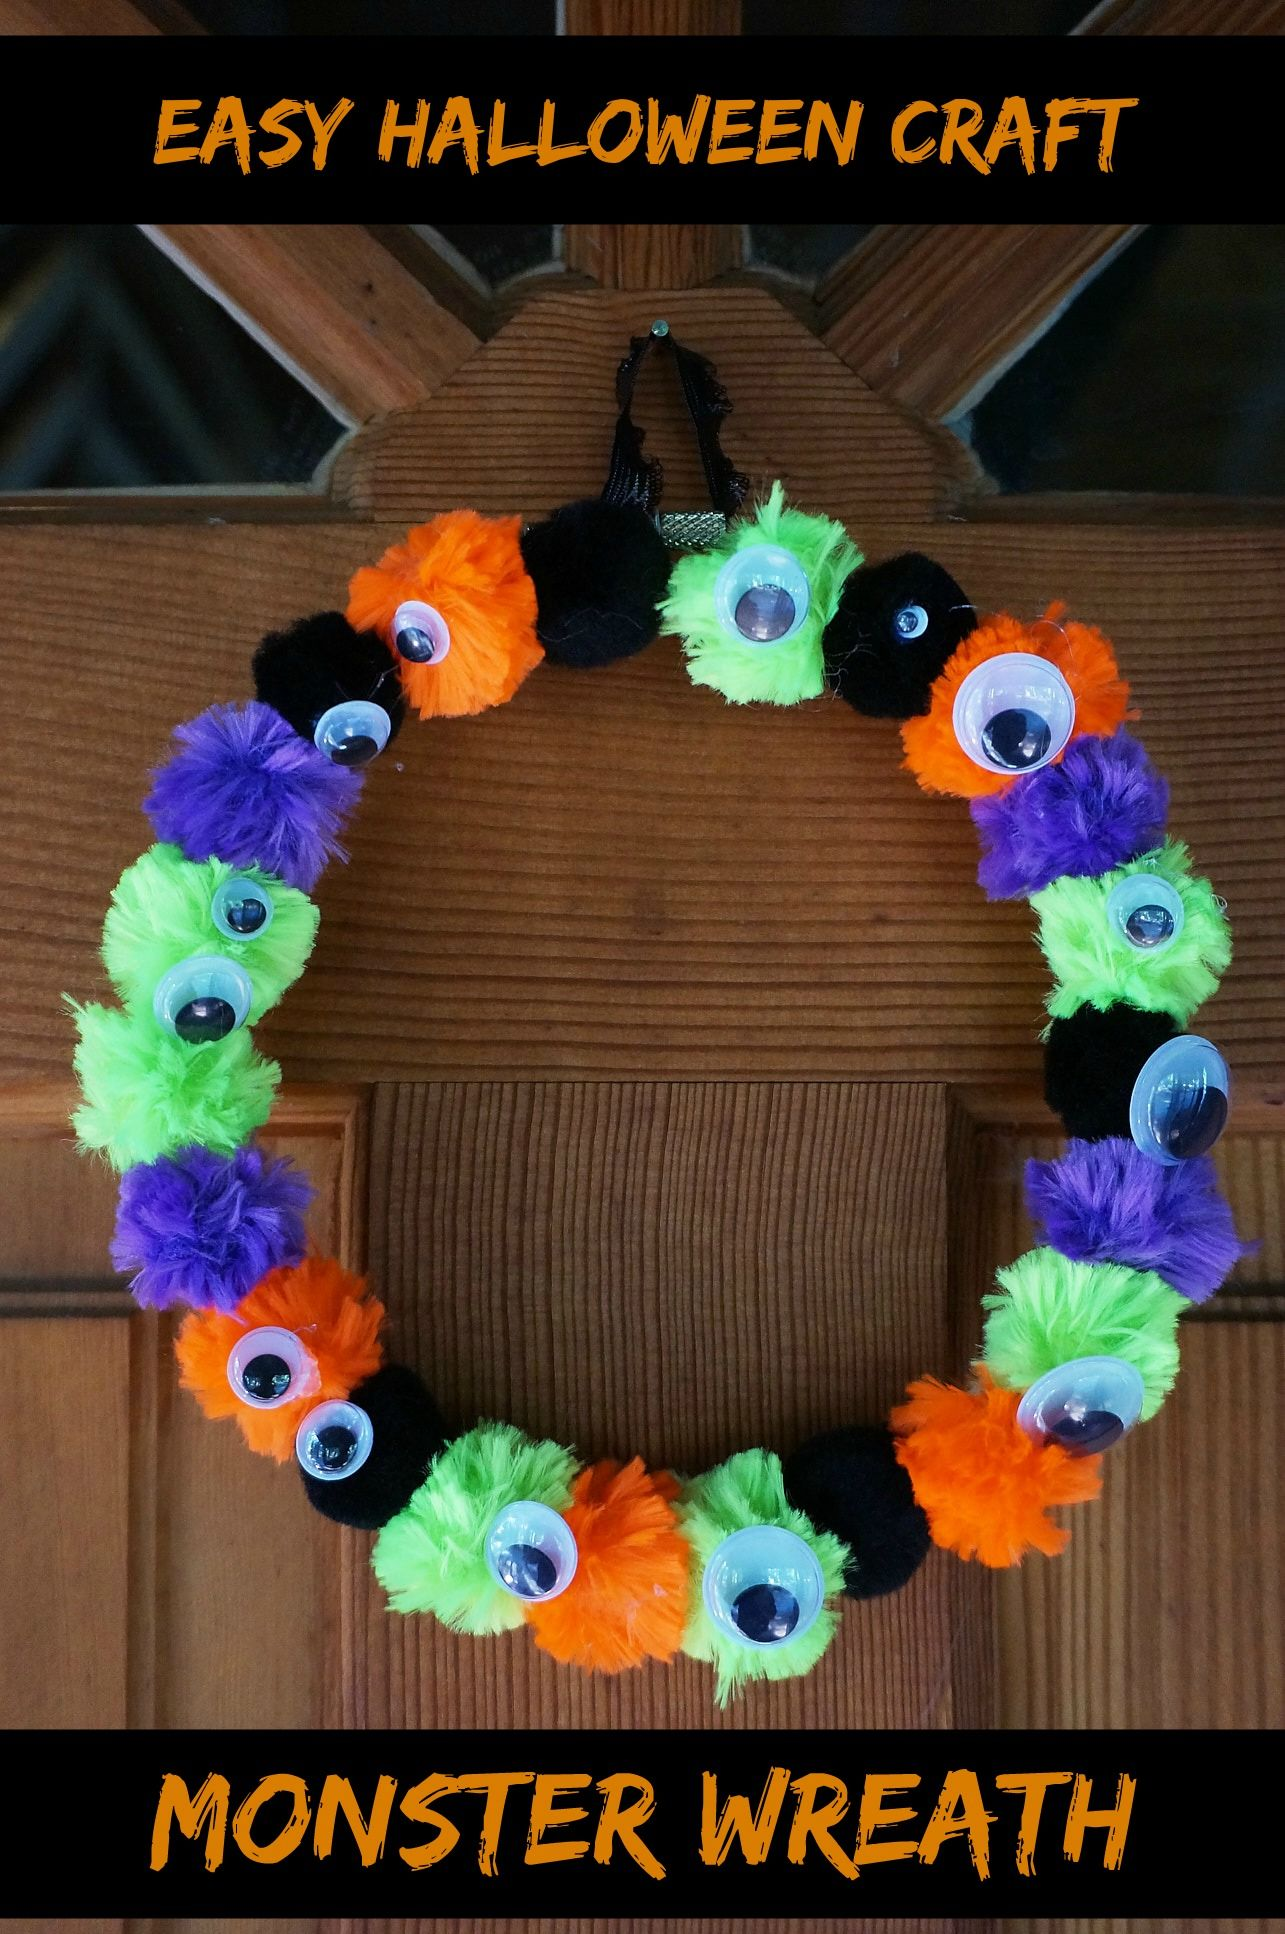 This Fun Easy Kid Craft Is Perfect For Halloween Have The Kids Make A Cute And Spooky Wreath With Pom Poms And Googly Eyes Halloween Ki Halloween Crafts For Kids Halloween